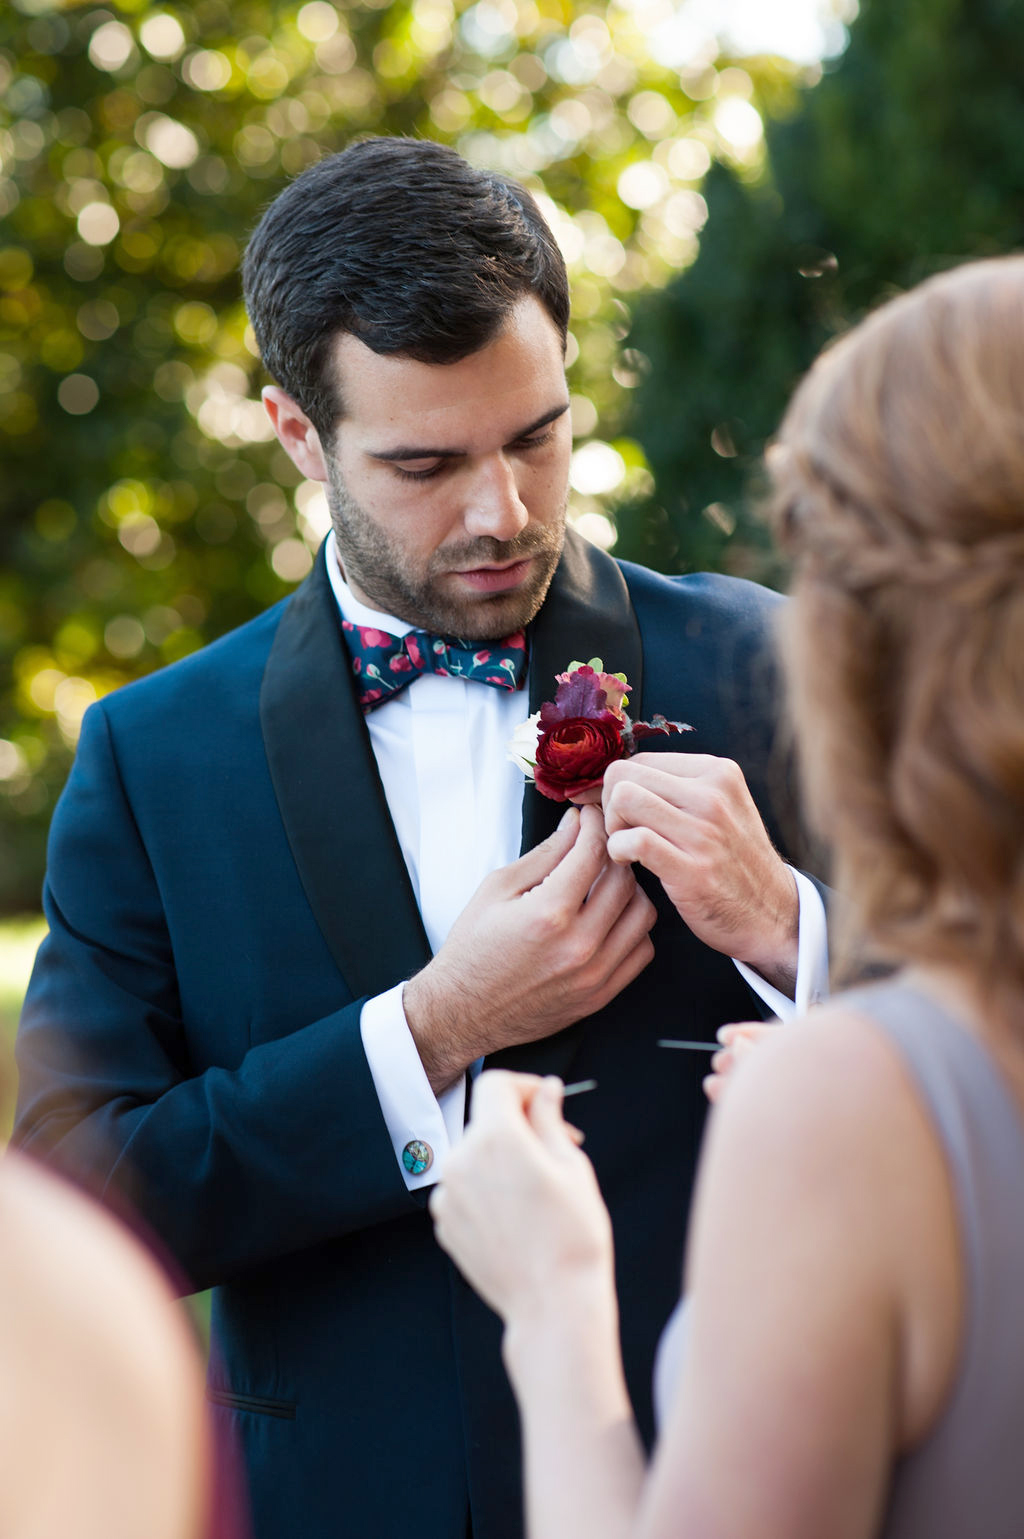 groom wearing navy tux pins red floral boutonniere